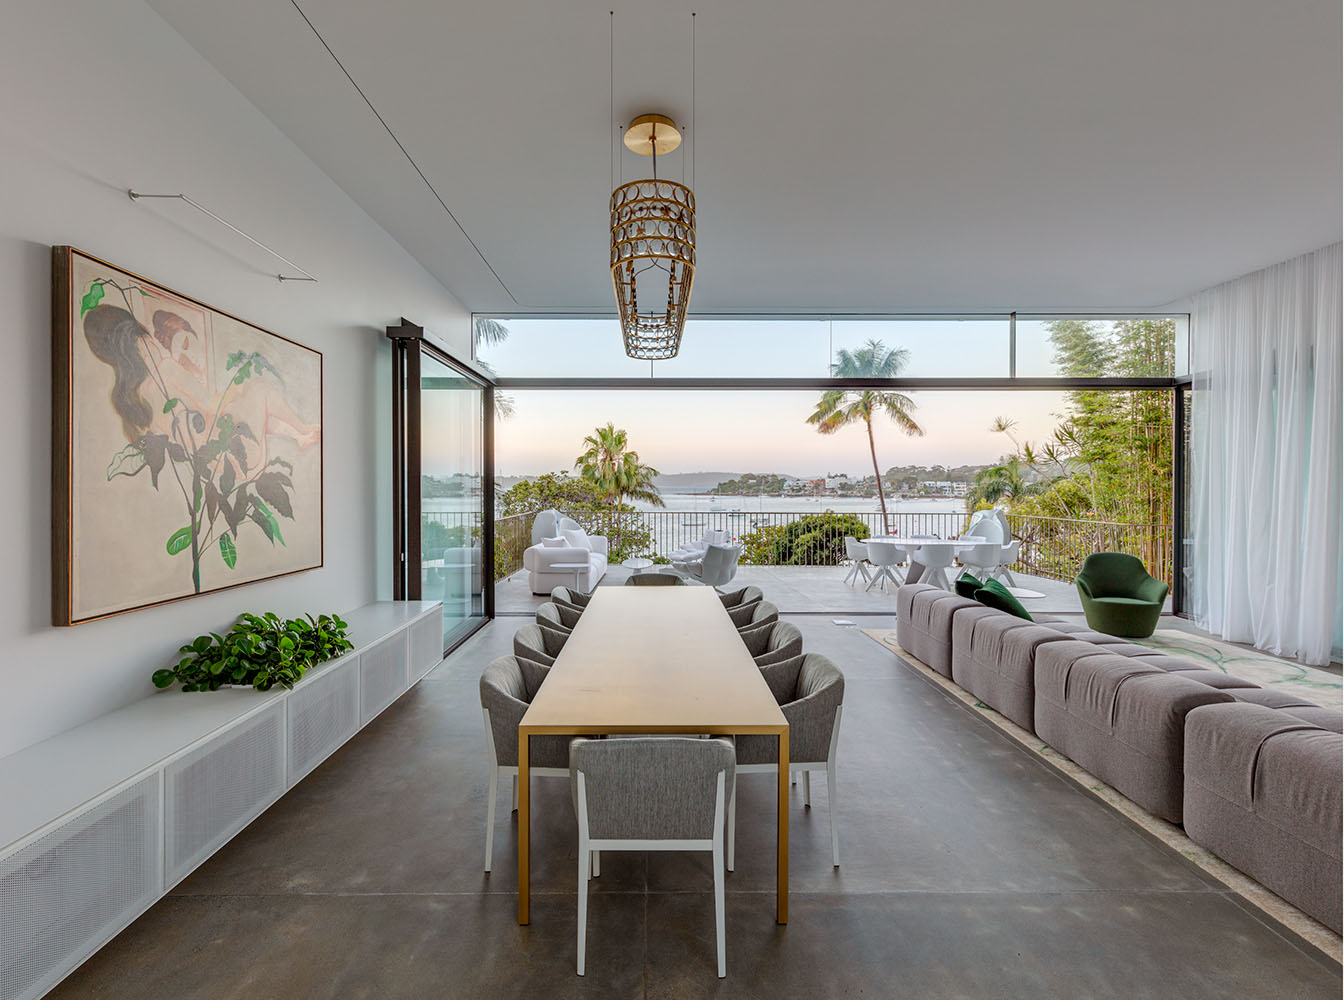 crescent_house_by_mathew_woodward_architecture_architectural_photography_murray_fredericks